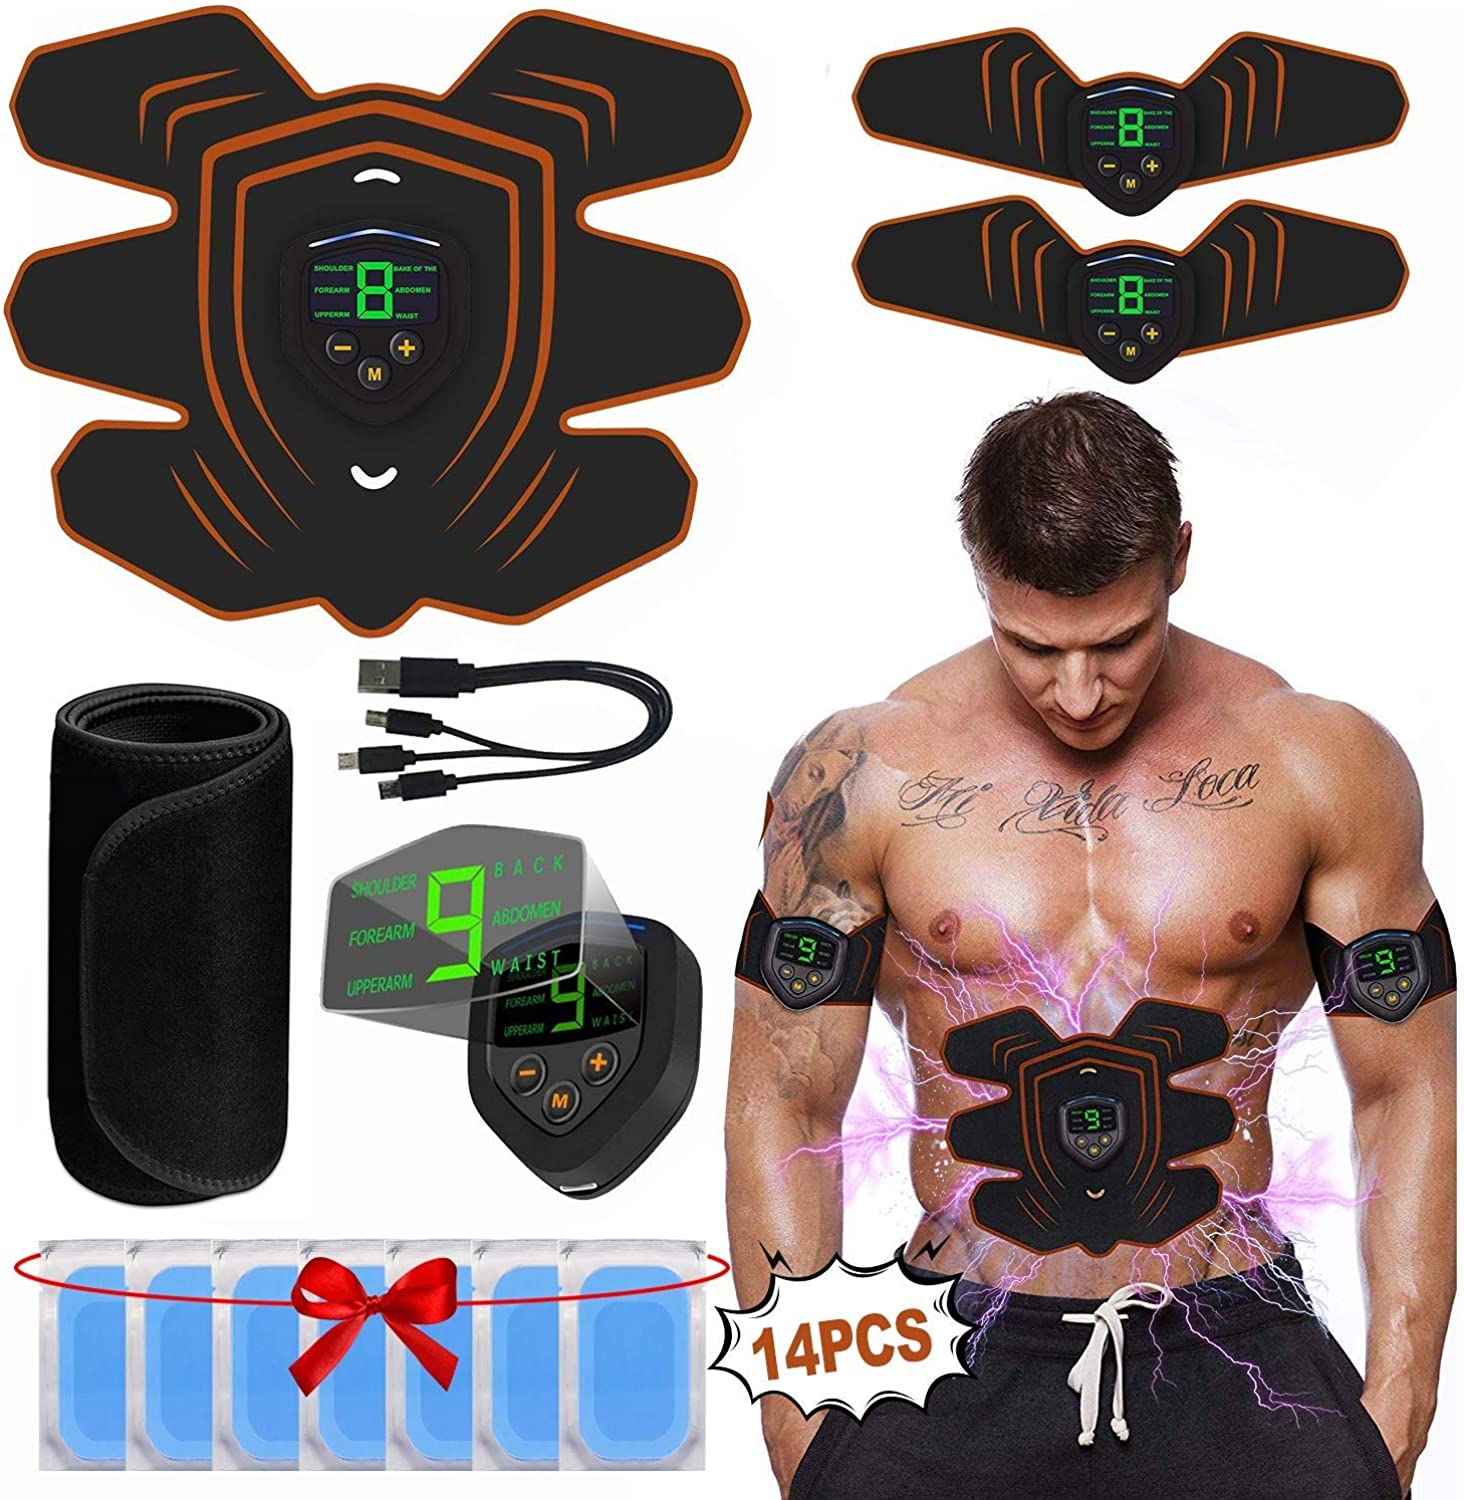 Mscxj ABS Stimulator Muscle Toner, Abdominal Toning Belt Muscle Smart EMS Body Trainer, USB Rechargeable LCD Display 6 Modes & 9 Levels Wireless Portable Unisex Fitness Training Fat Burning